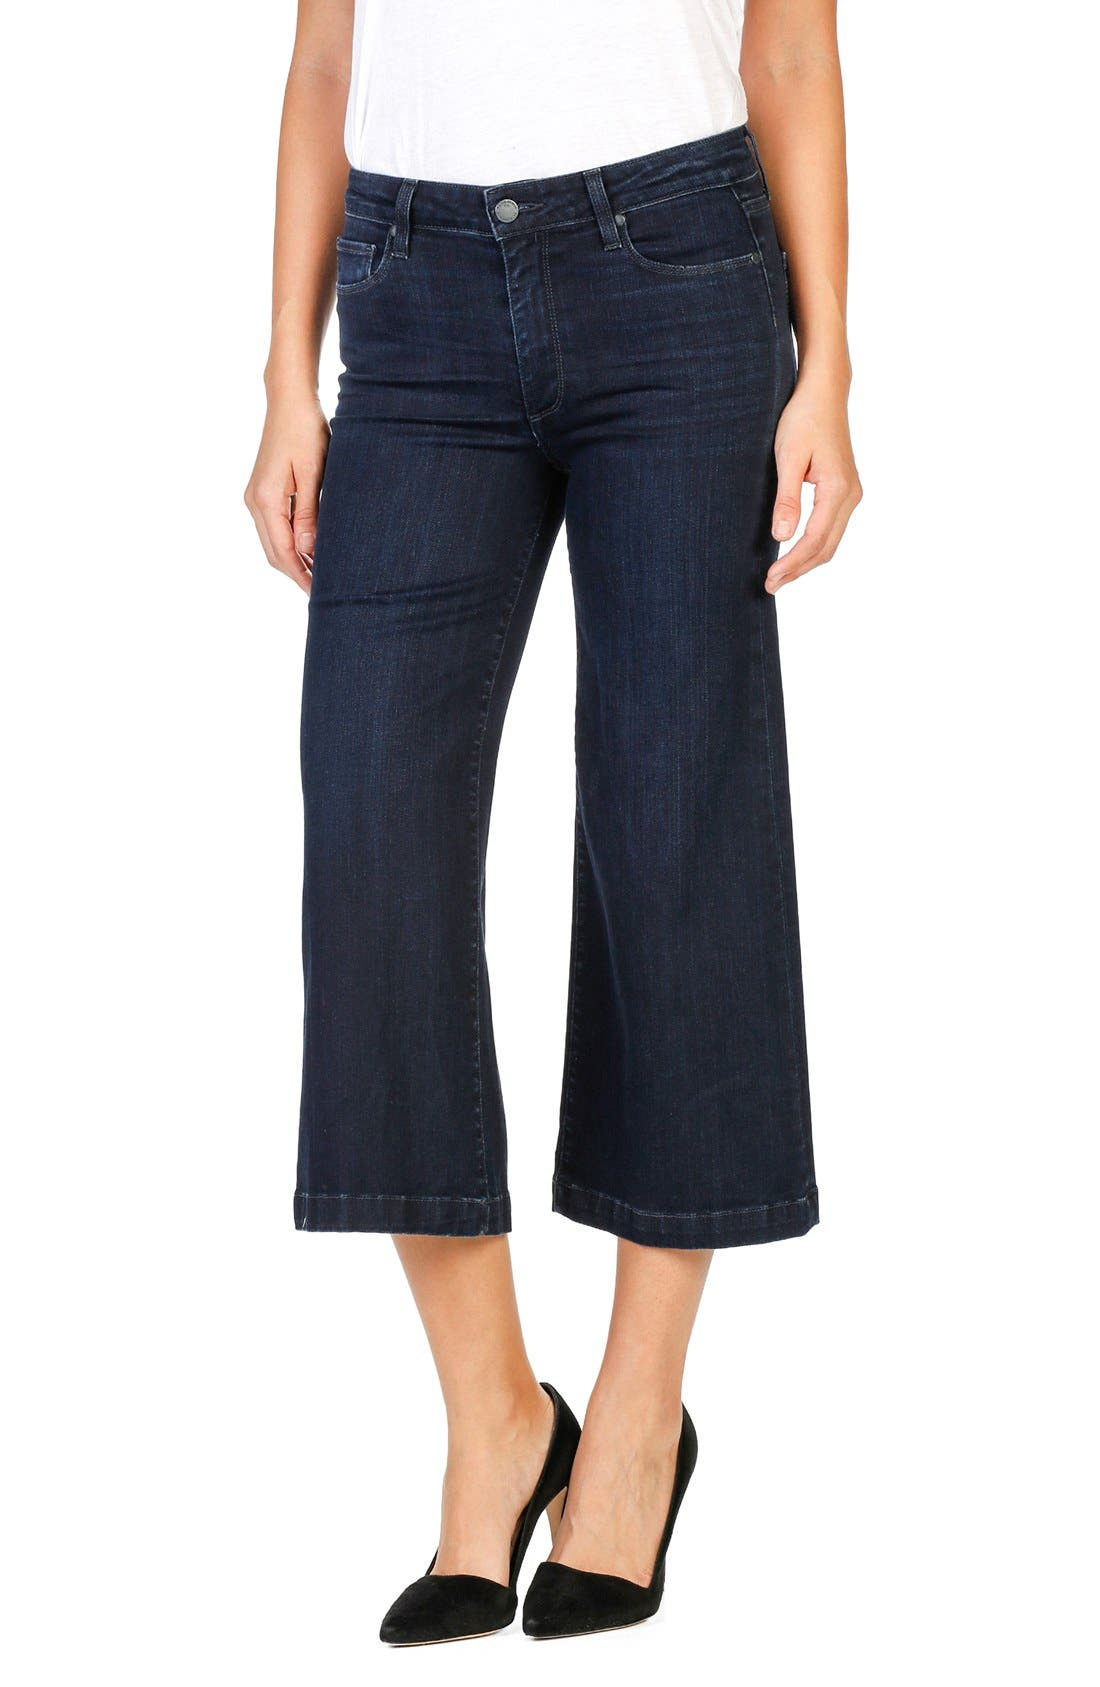 Trouser & Wide Leg Jeans & Denim for Women: Skinny, Boyfriend ...